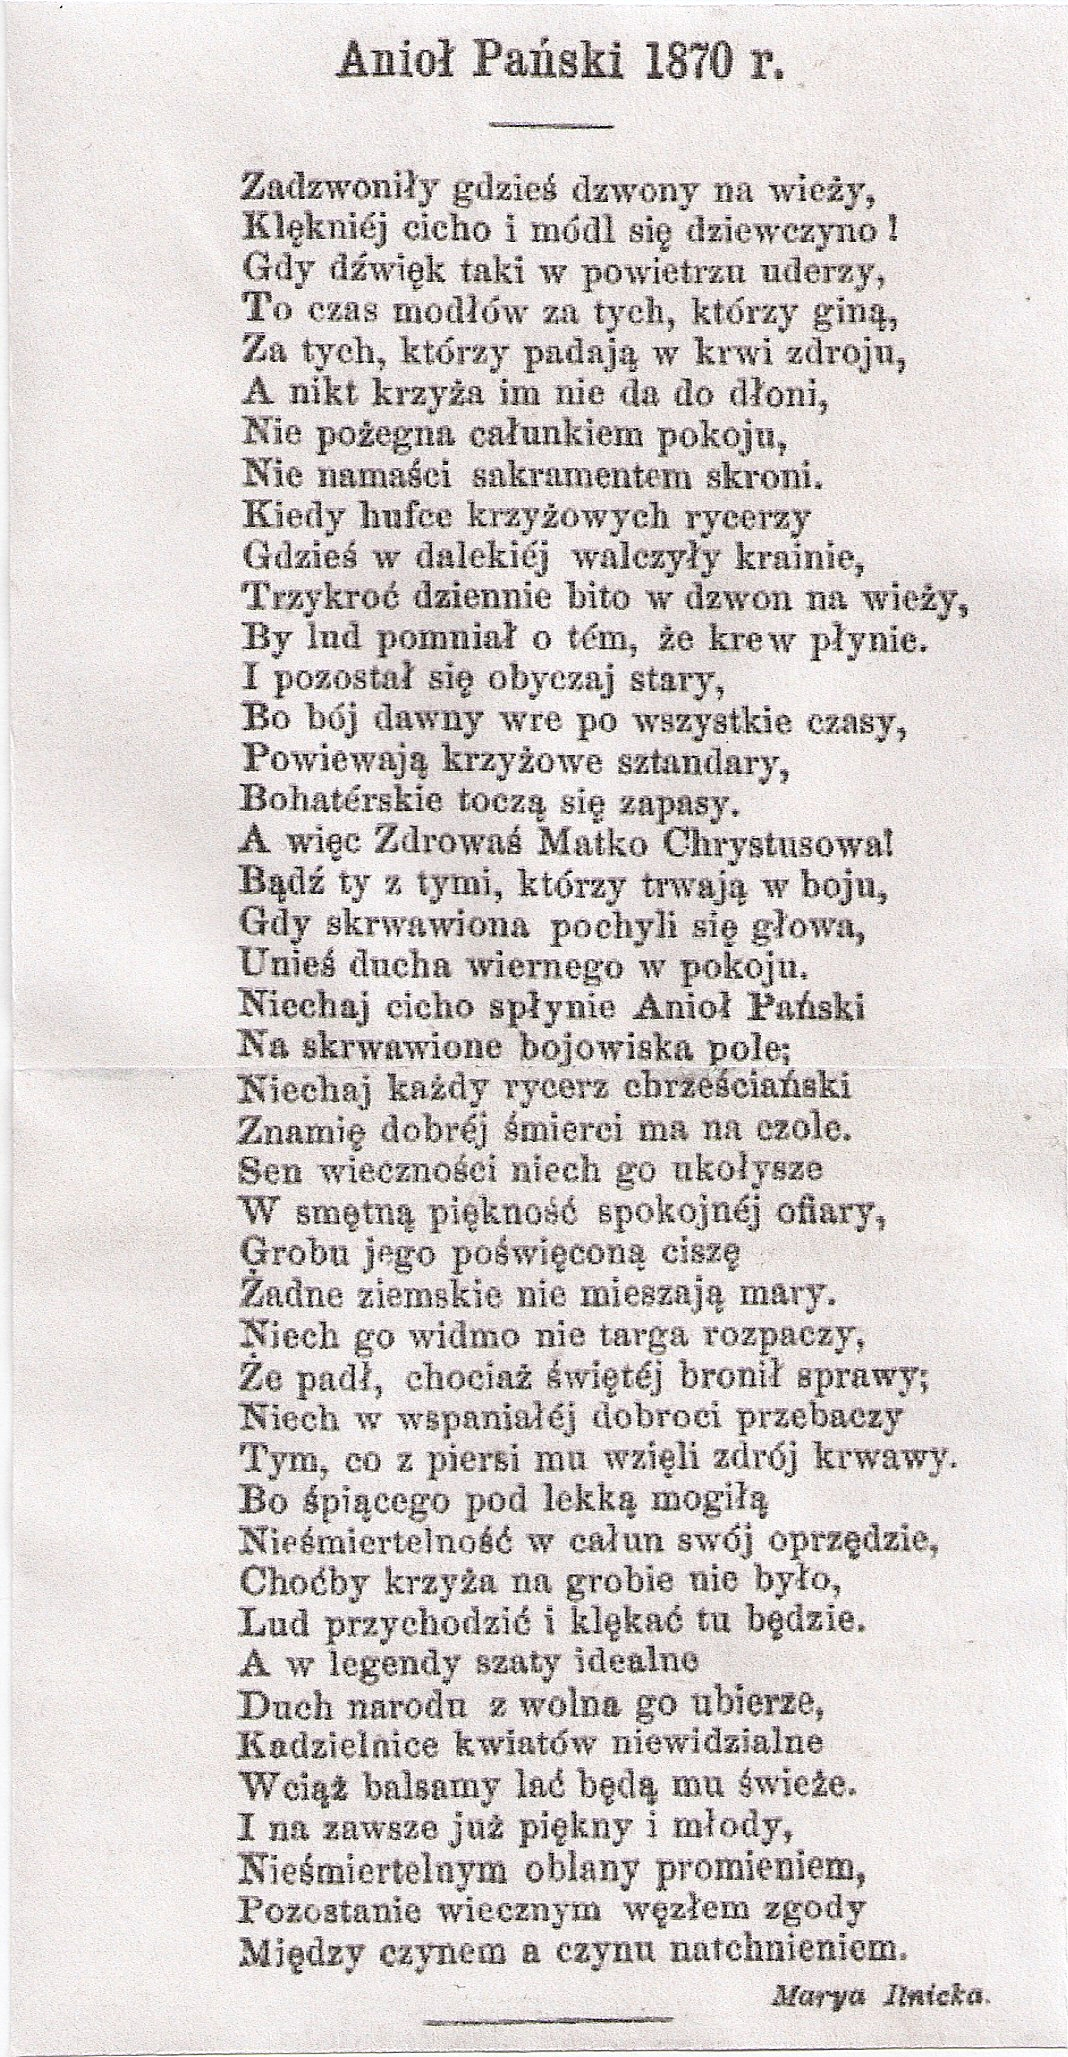 Fileanioł Pański 1870 Rjpg Wikimedia Commons